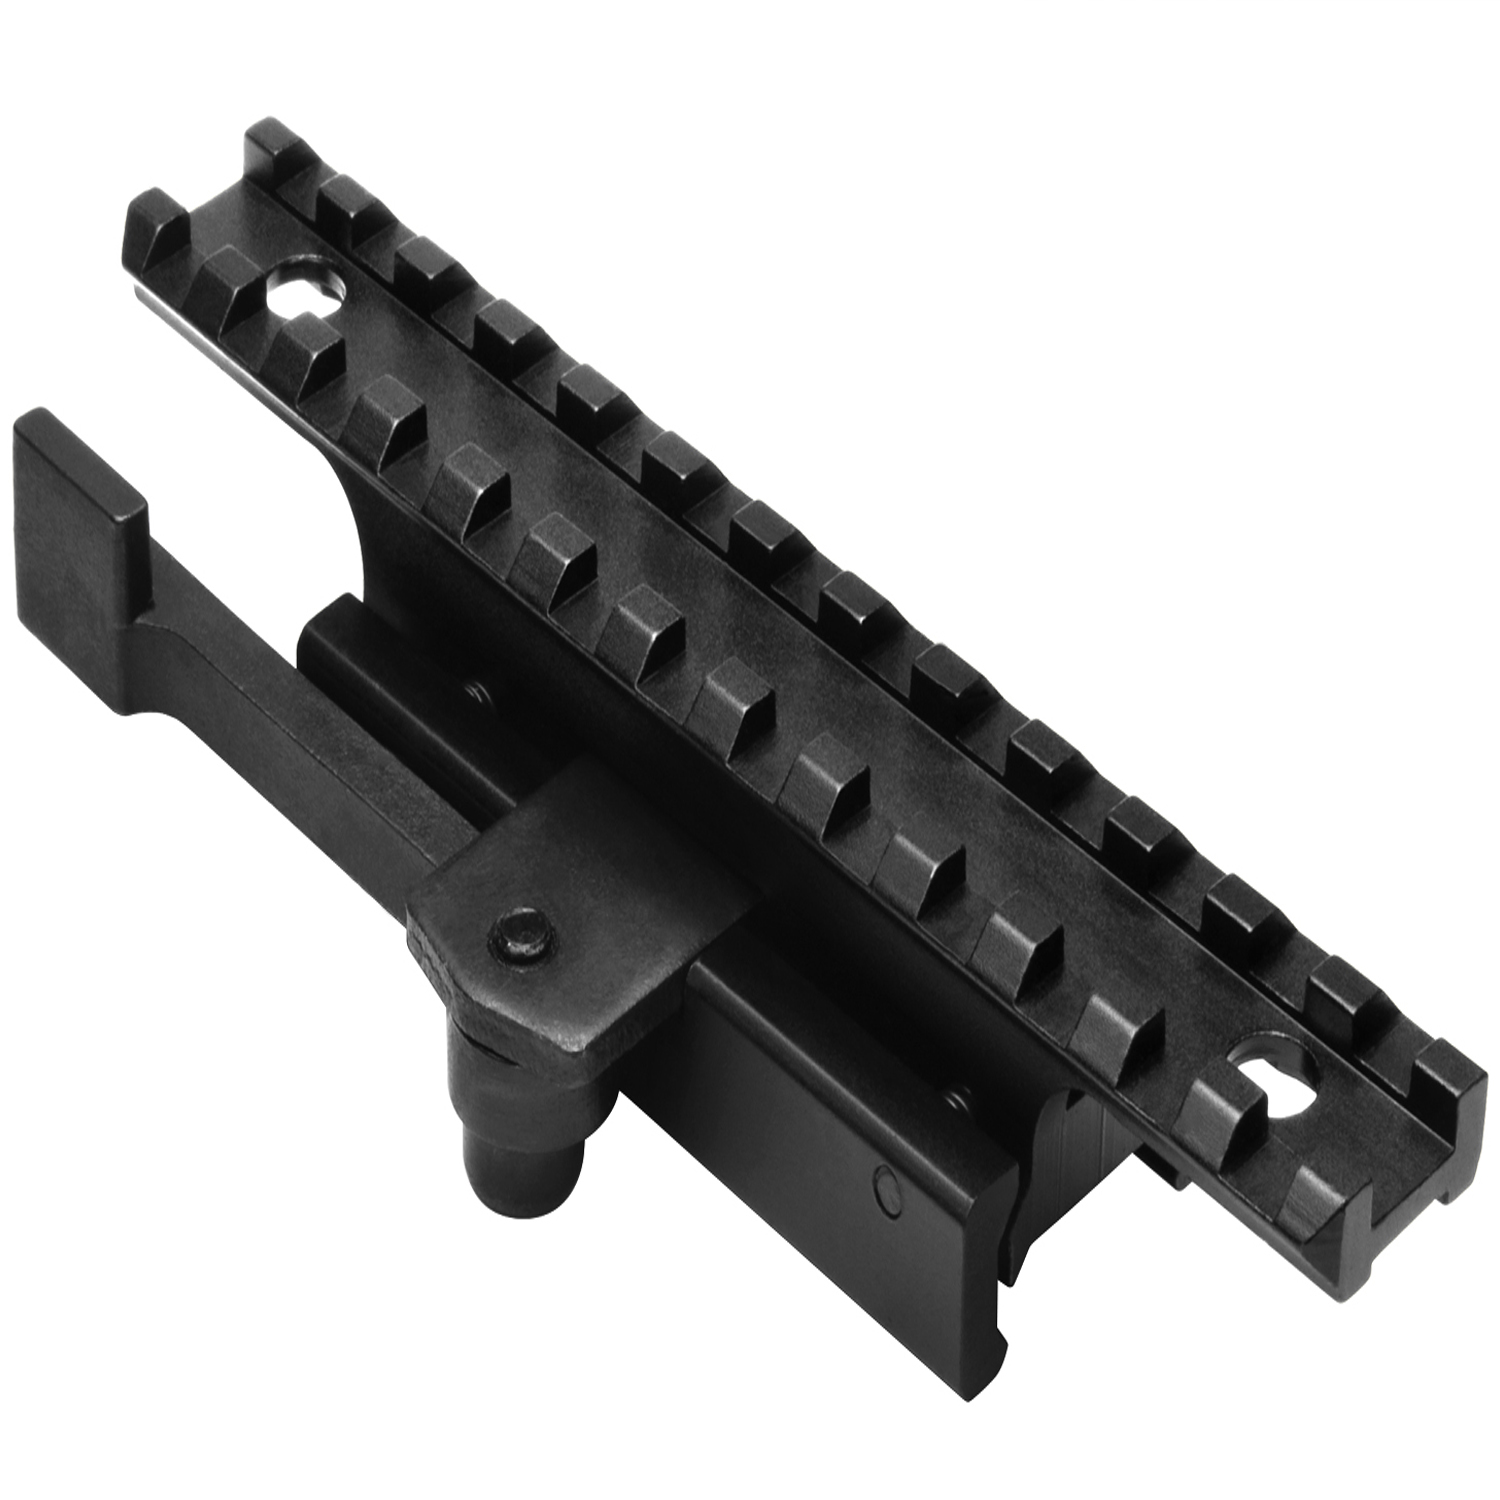 Ncstar AR15 Weaver Style Riser With Quick Release Weaver Mount